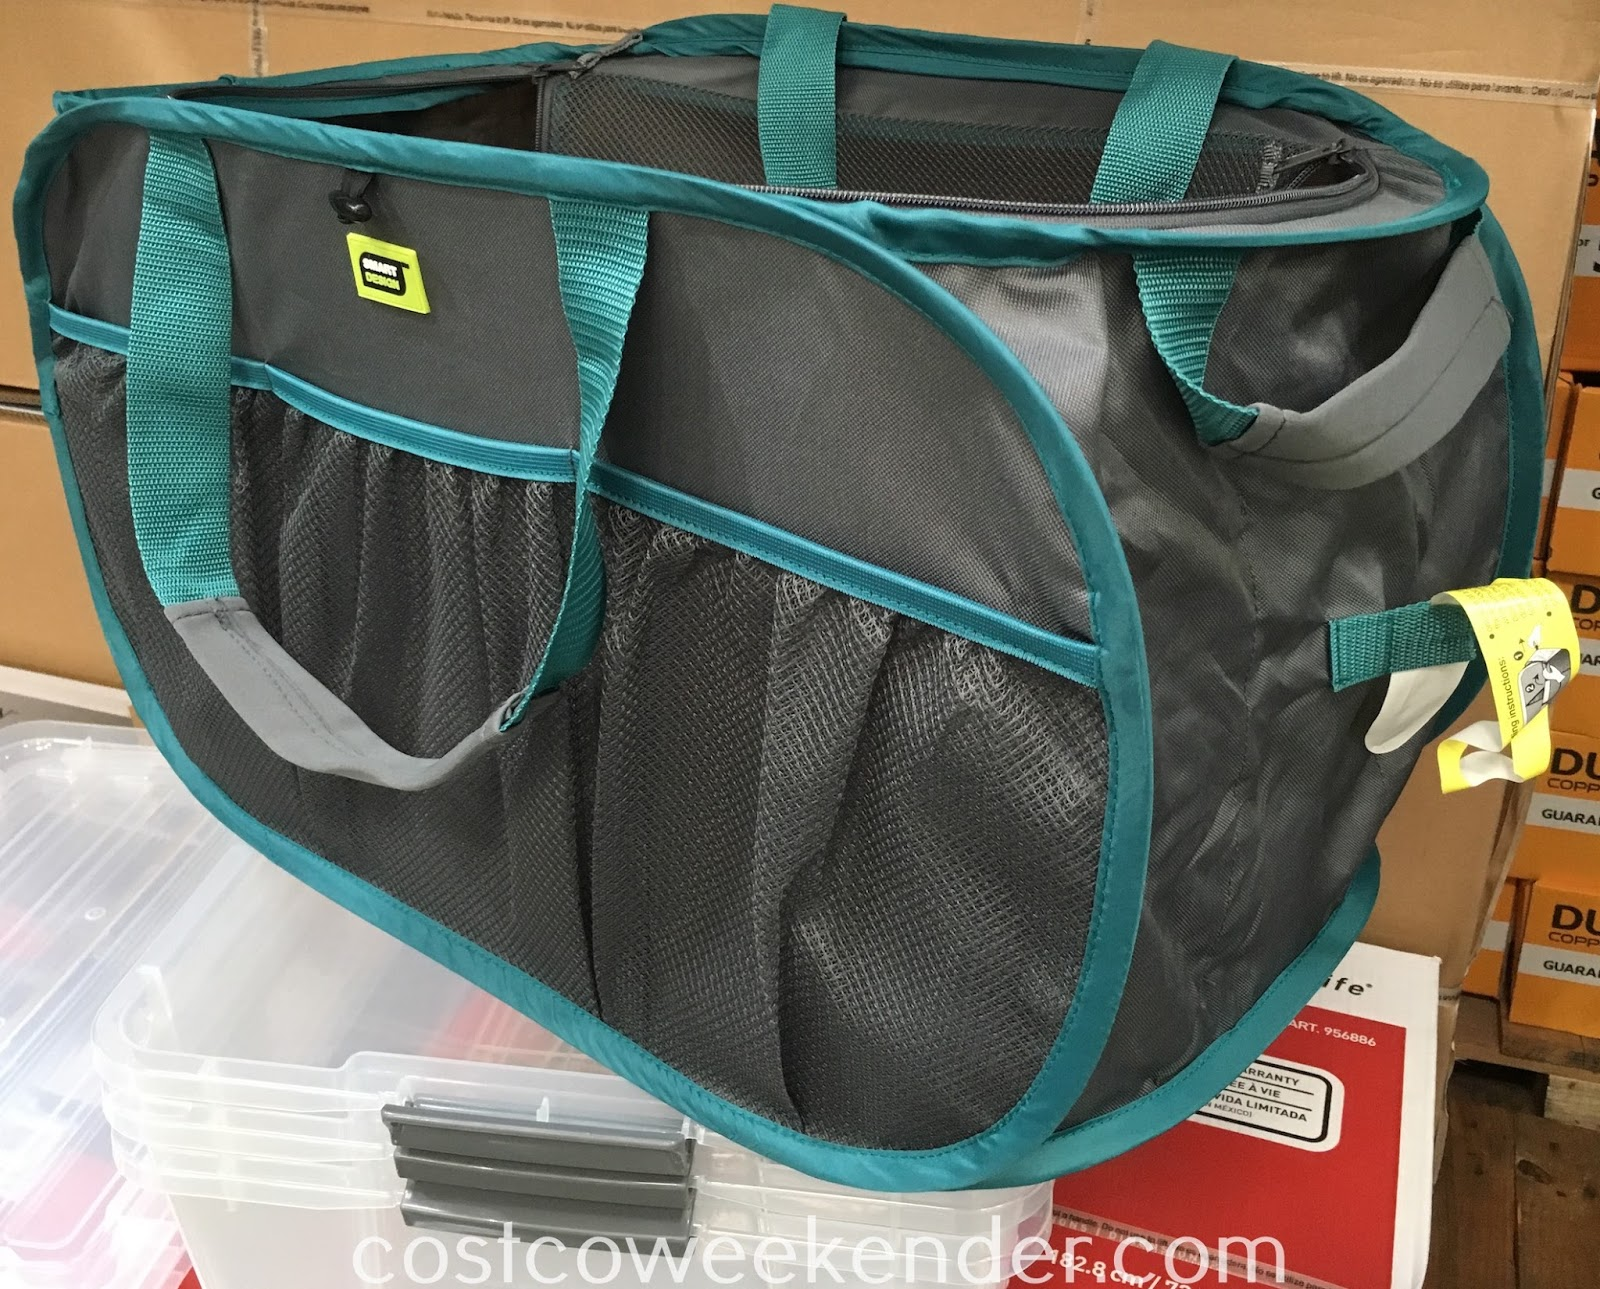 Get organized with the Smart Design Pop-Up Organizer Tote